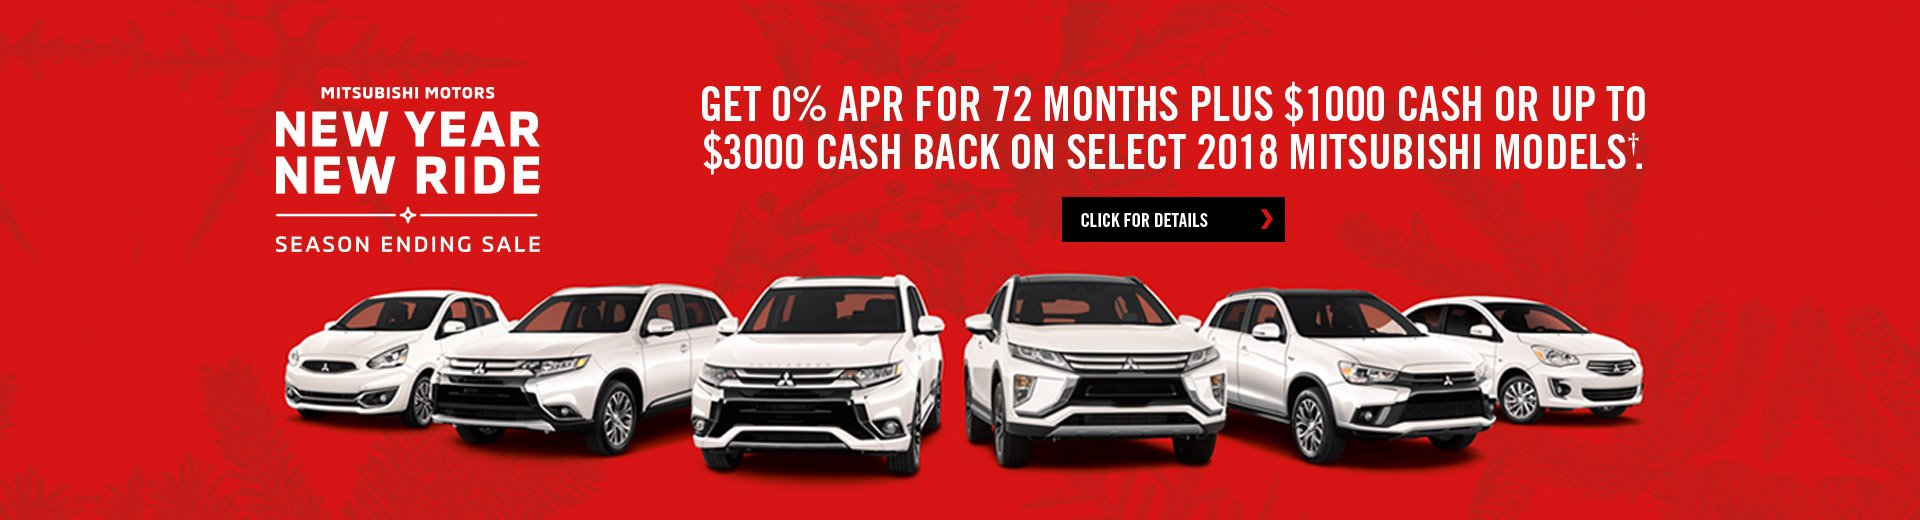 0% APR for 72 Month